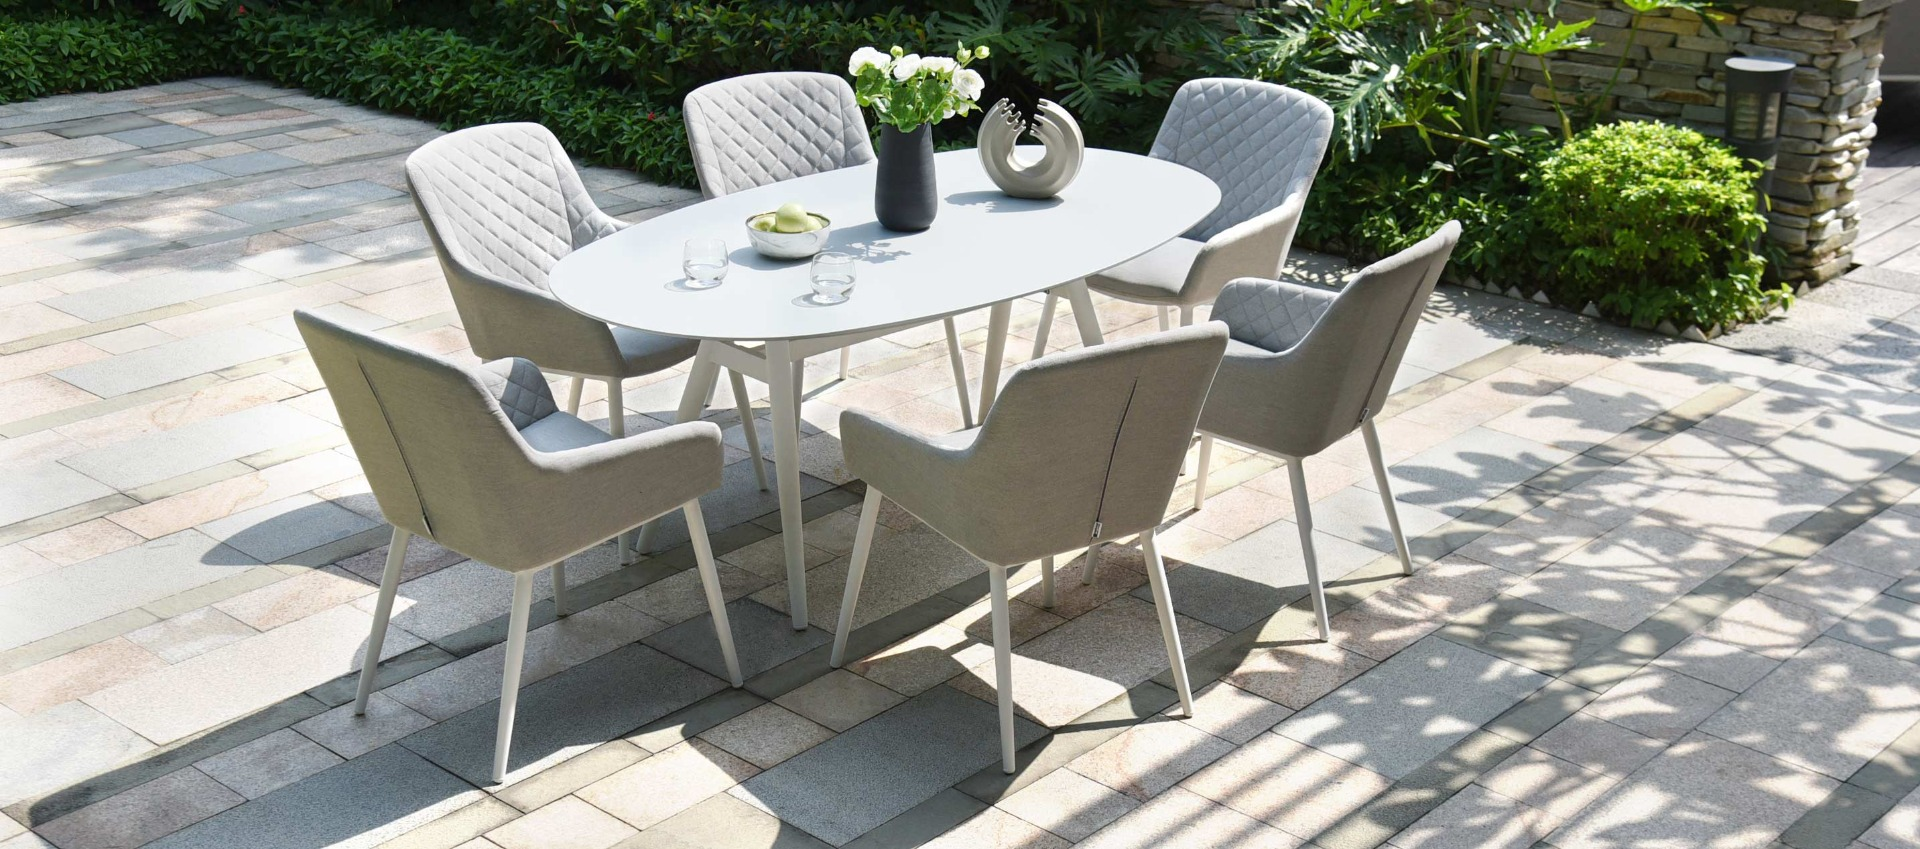 Maze Lounge - Outdoor Fabric Zest 6 Seat Oval Dining Set - Lead Chine